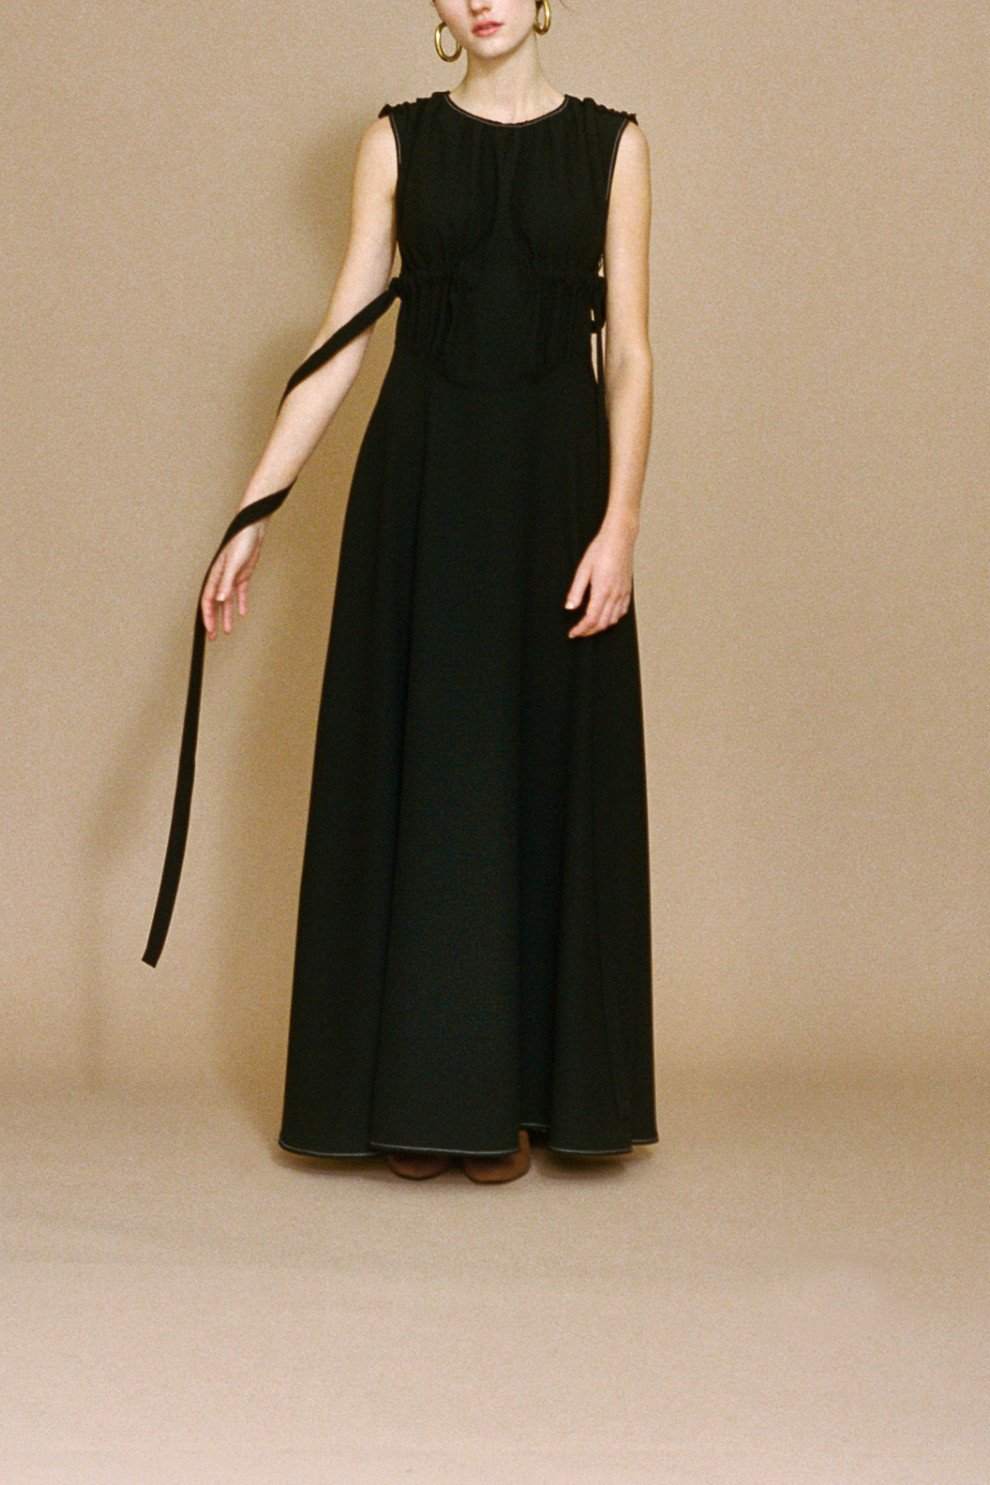 Lena Full-Length Dress Black Satin Crepe - SPECIAL PRICE